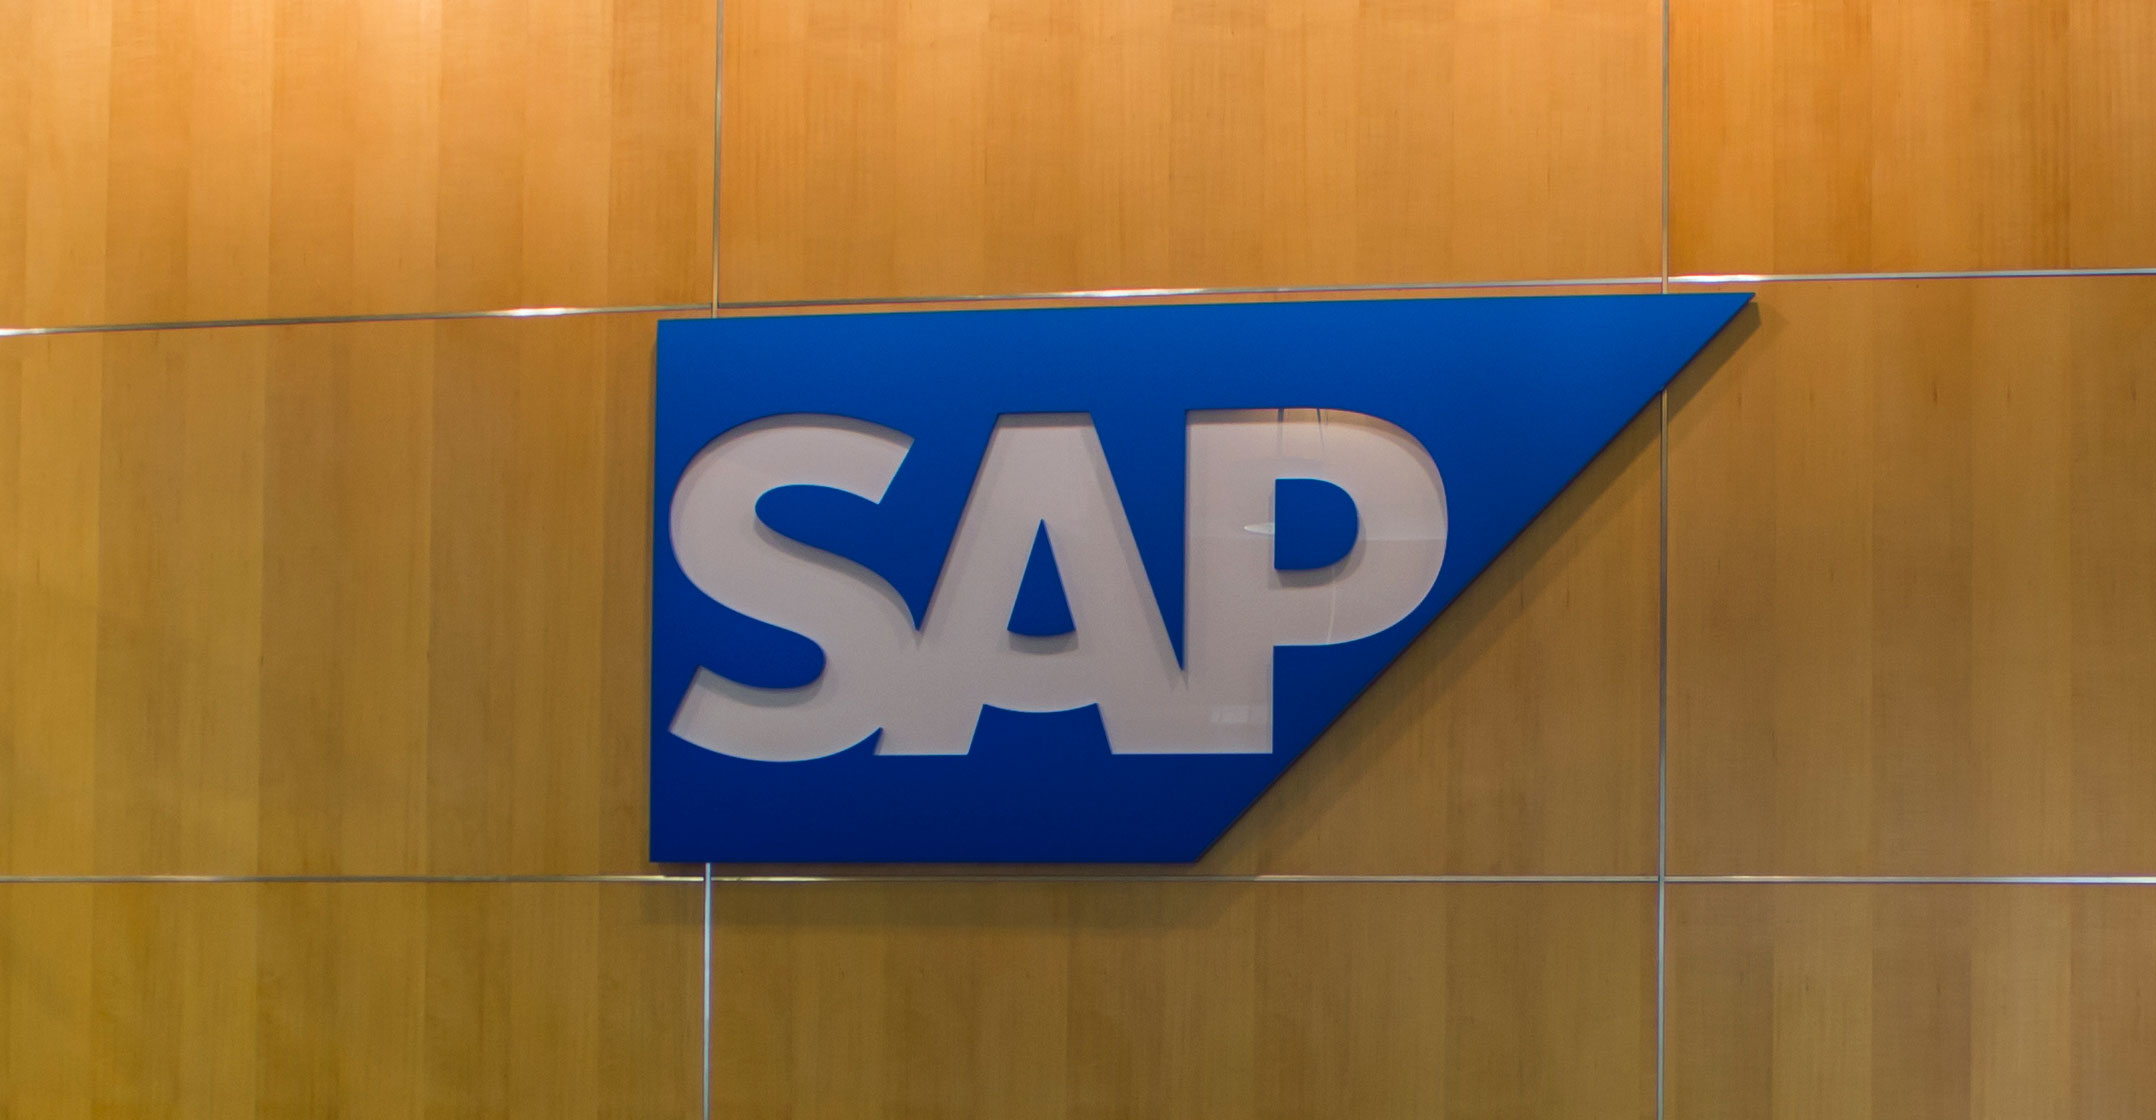 #GuptaLeaks: SAP execs suspended as probe launched into Gupta kickbacks